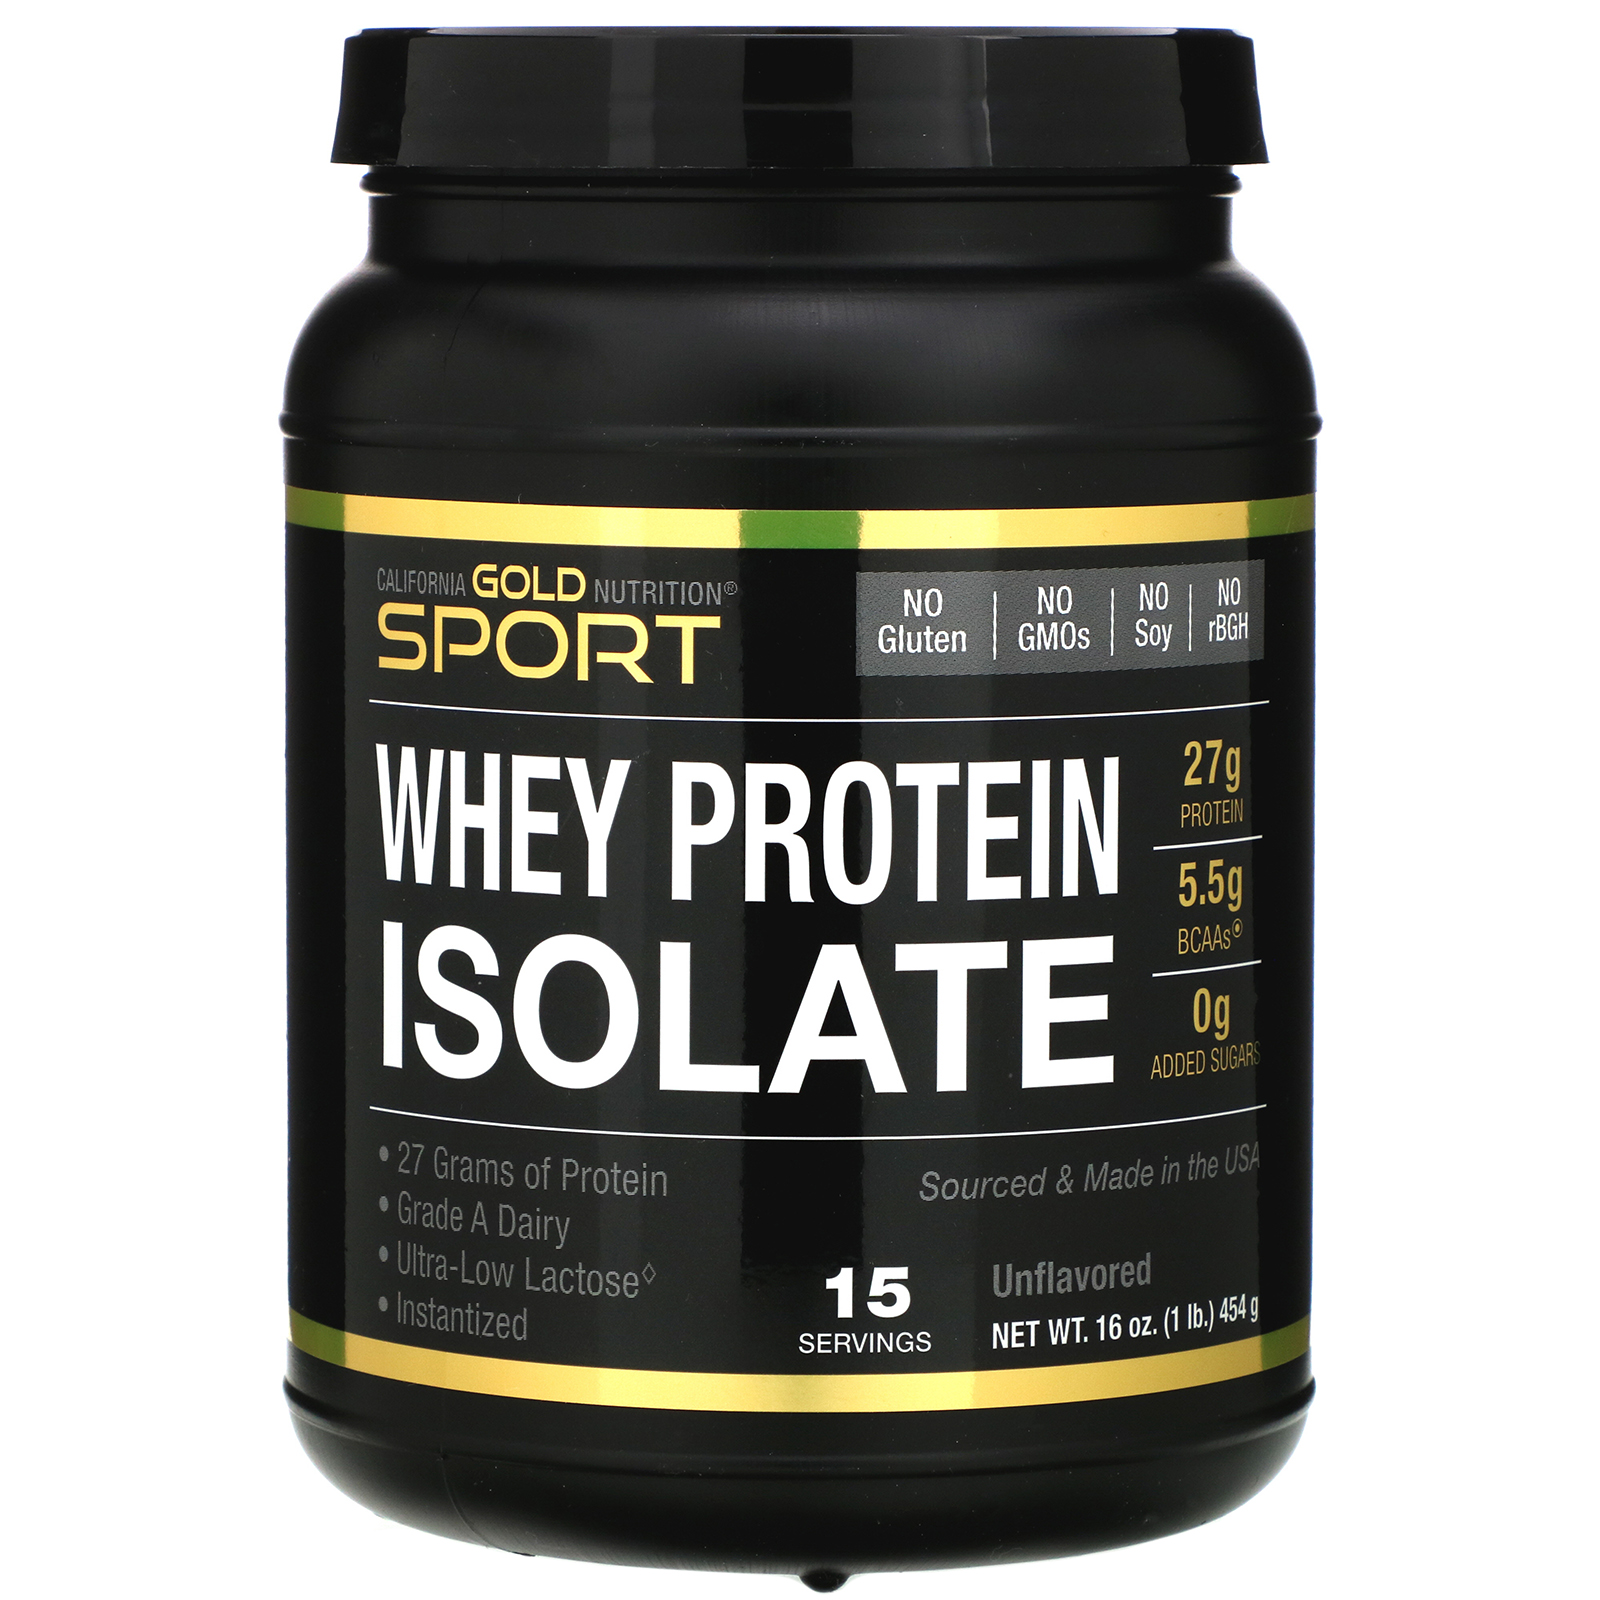 Whey Protein Isolate 454g isolate whey protein Whey Protein Isolate price Whey Protein Isolate Gold Standard Whey Isolate فوائد Whey protein Gold Standard Whey protein concentrate Whey isolate